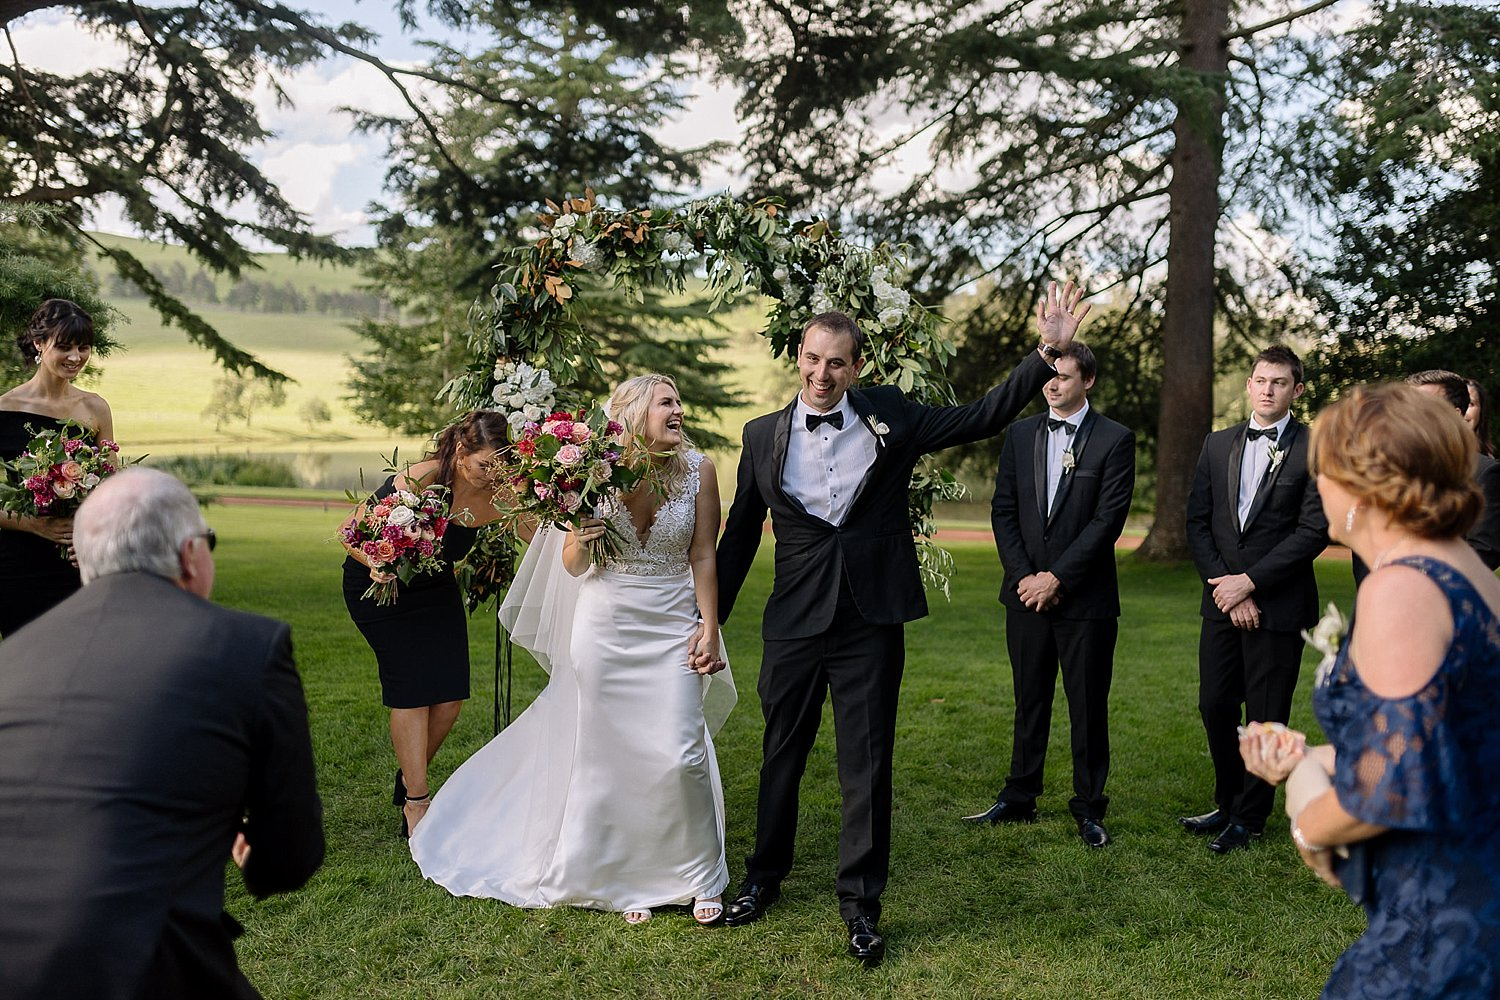 Keepsakephoto by the Keeffes,Canberra Wedding Photographer,Canberra Wedding Photography,Bowral Wedding Photographer,Bowral,ACT wedding photographer,canberra weddings,Barn Wedding,bendooley estate,autumn wedding,bendooley estate wedding,Southern Highlands,Southern Highlands Wedding,